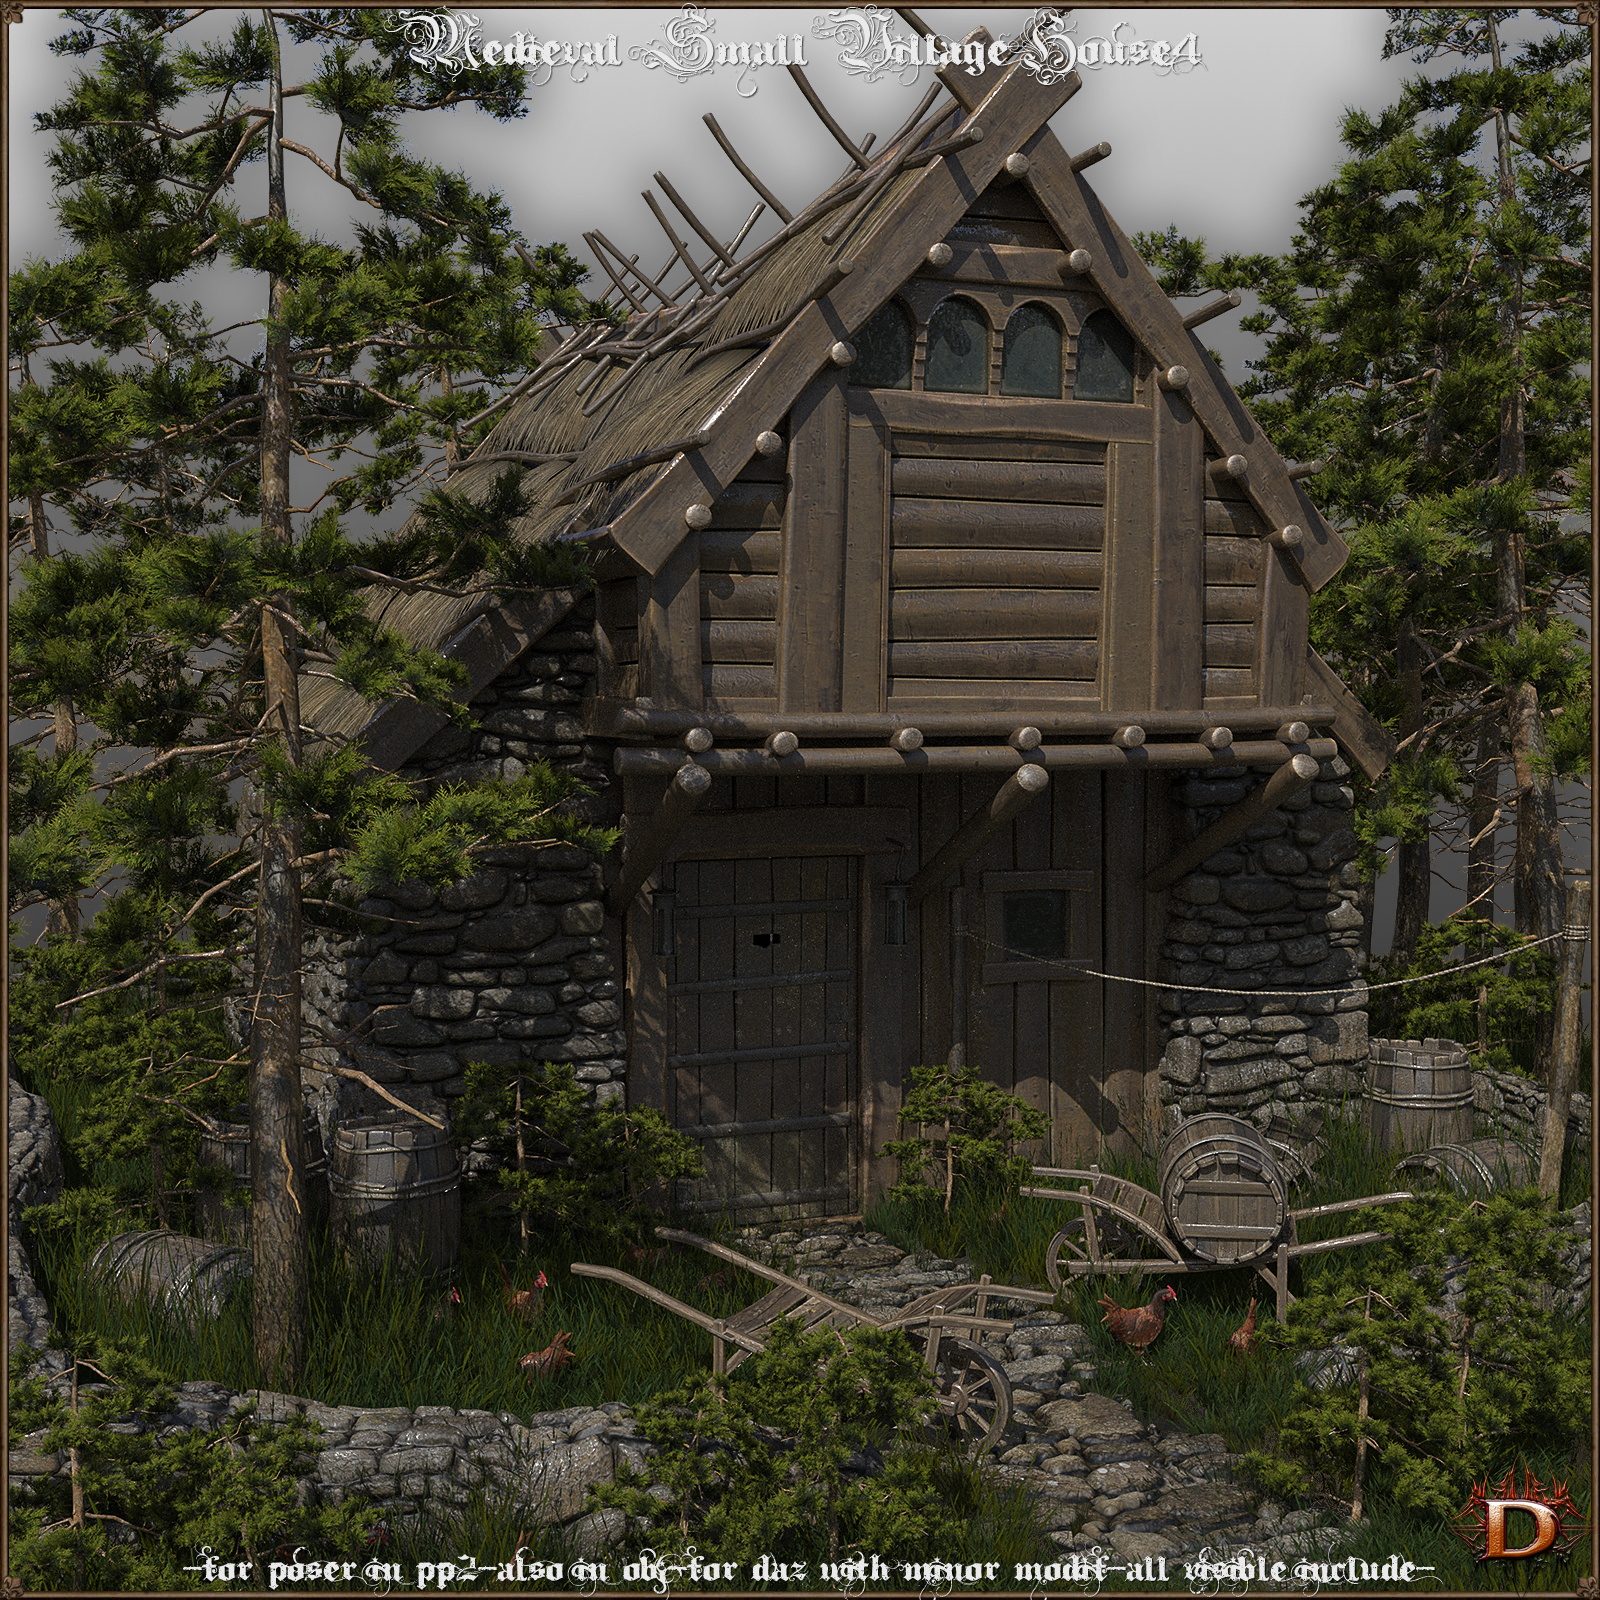 Medieval Small Village House4